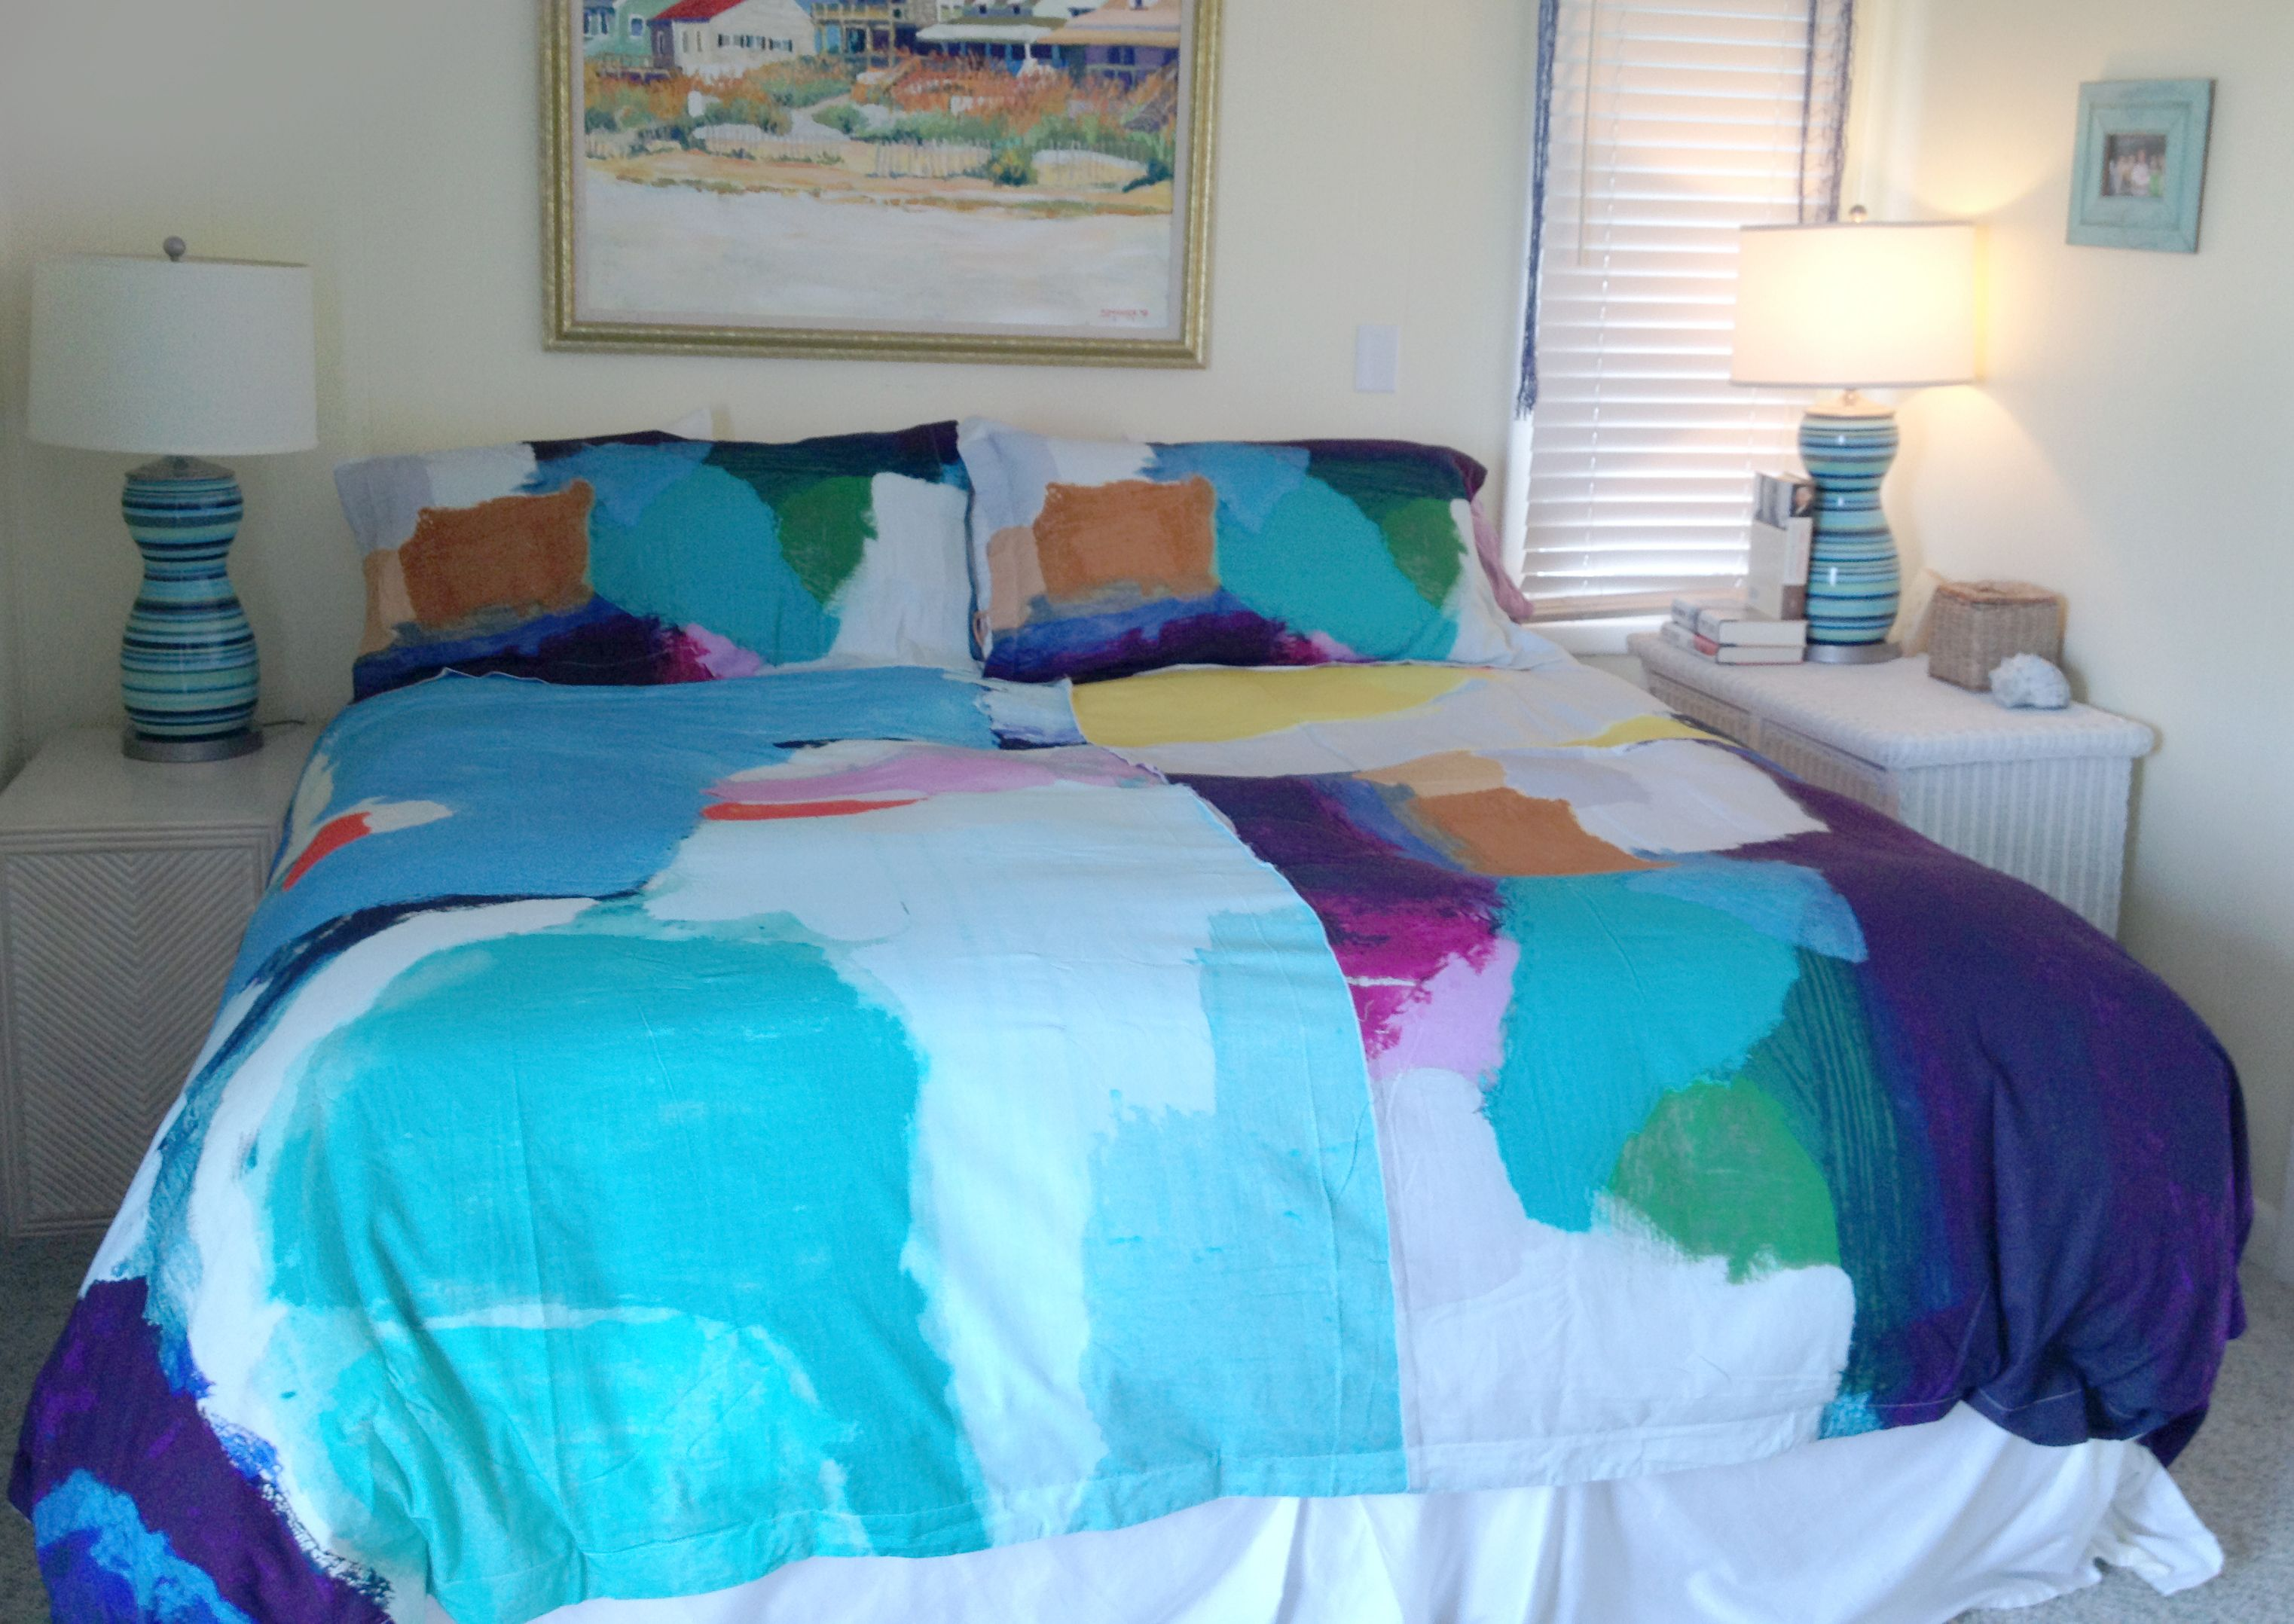 The Kala bedding collection from @Anthropologie, based upon the art of Claire Desjardins. - photo taken by a friend!